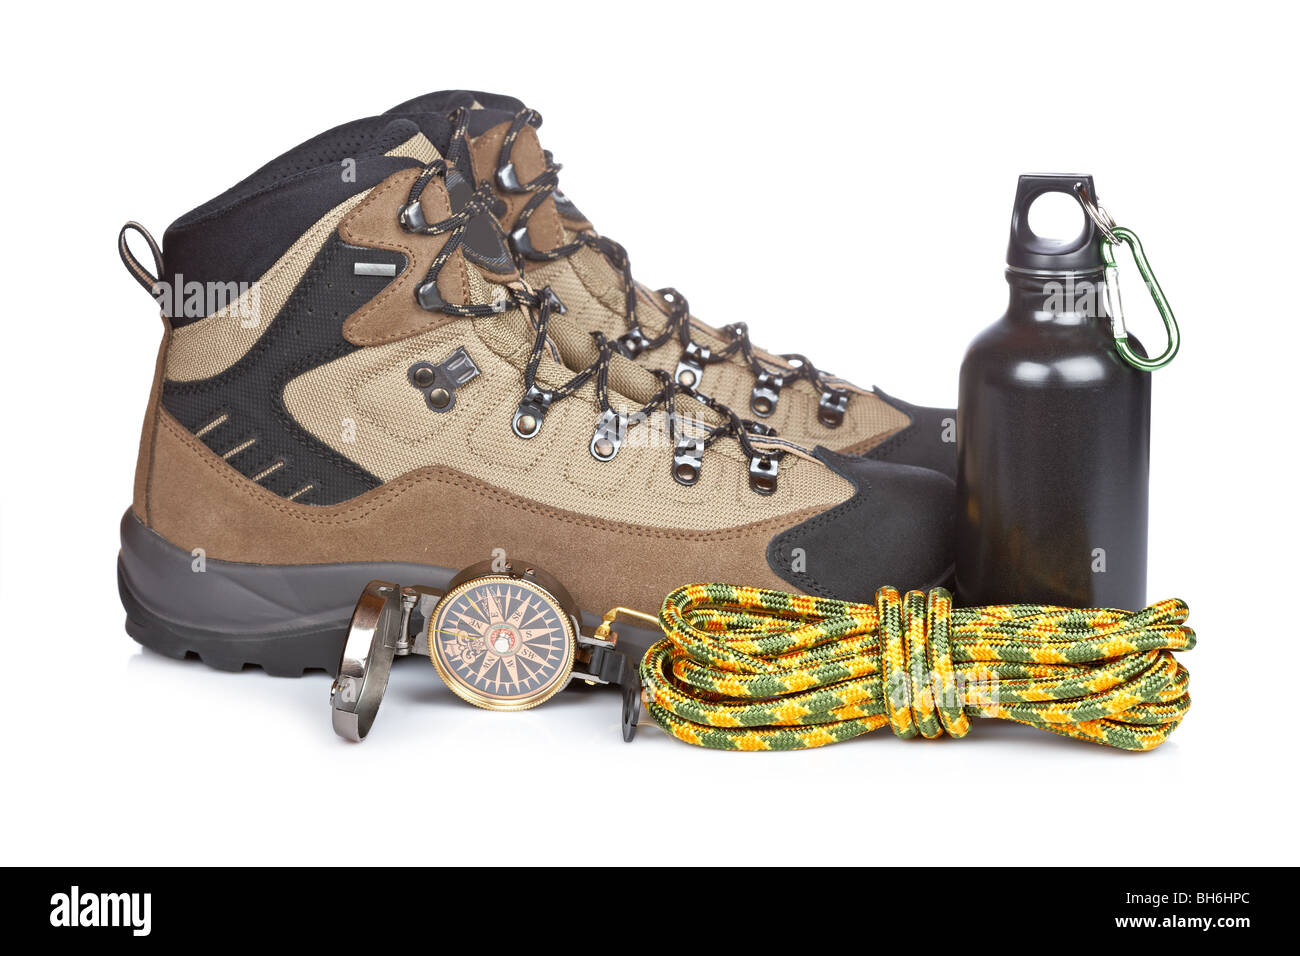 Hiking boots, canteen, rope and compass reflected on white background. Shallow depth of field - Stock Image